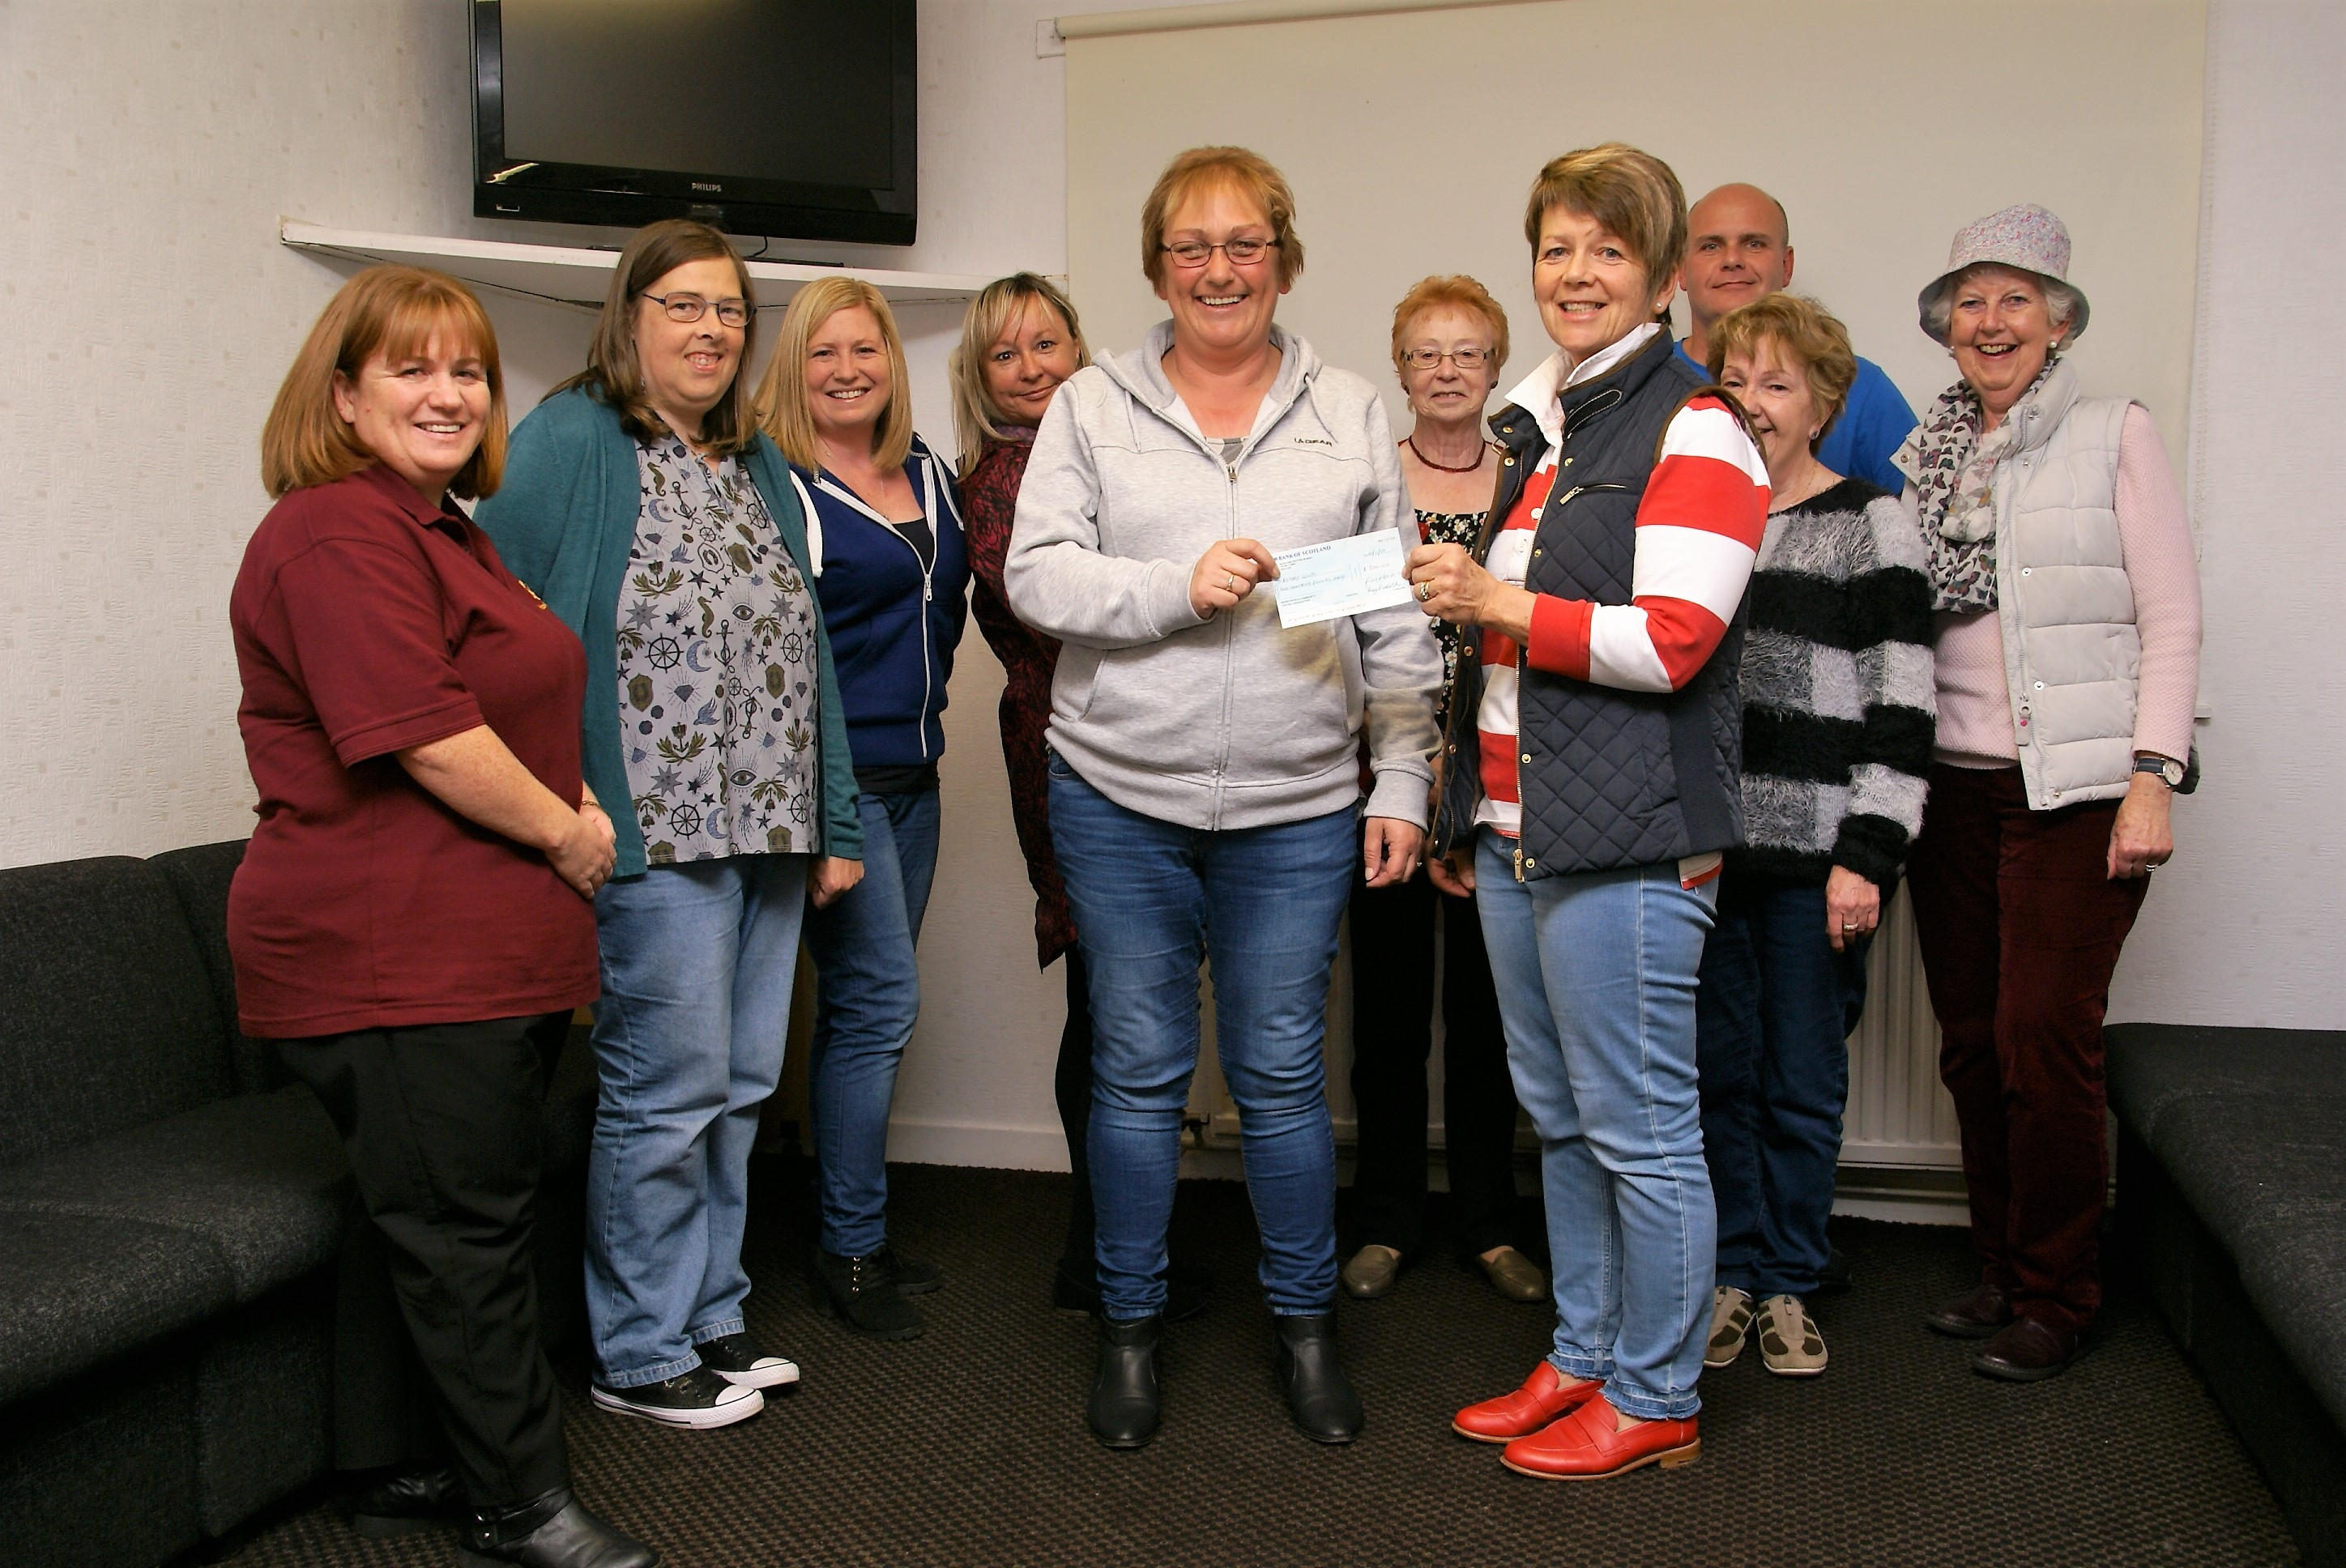 Members of Borrowfield Community Group present their donation to 'Save a Life Montrose'.